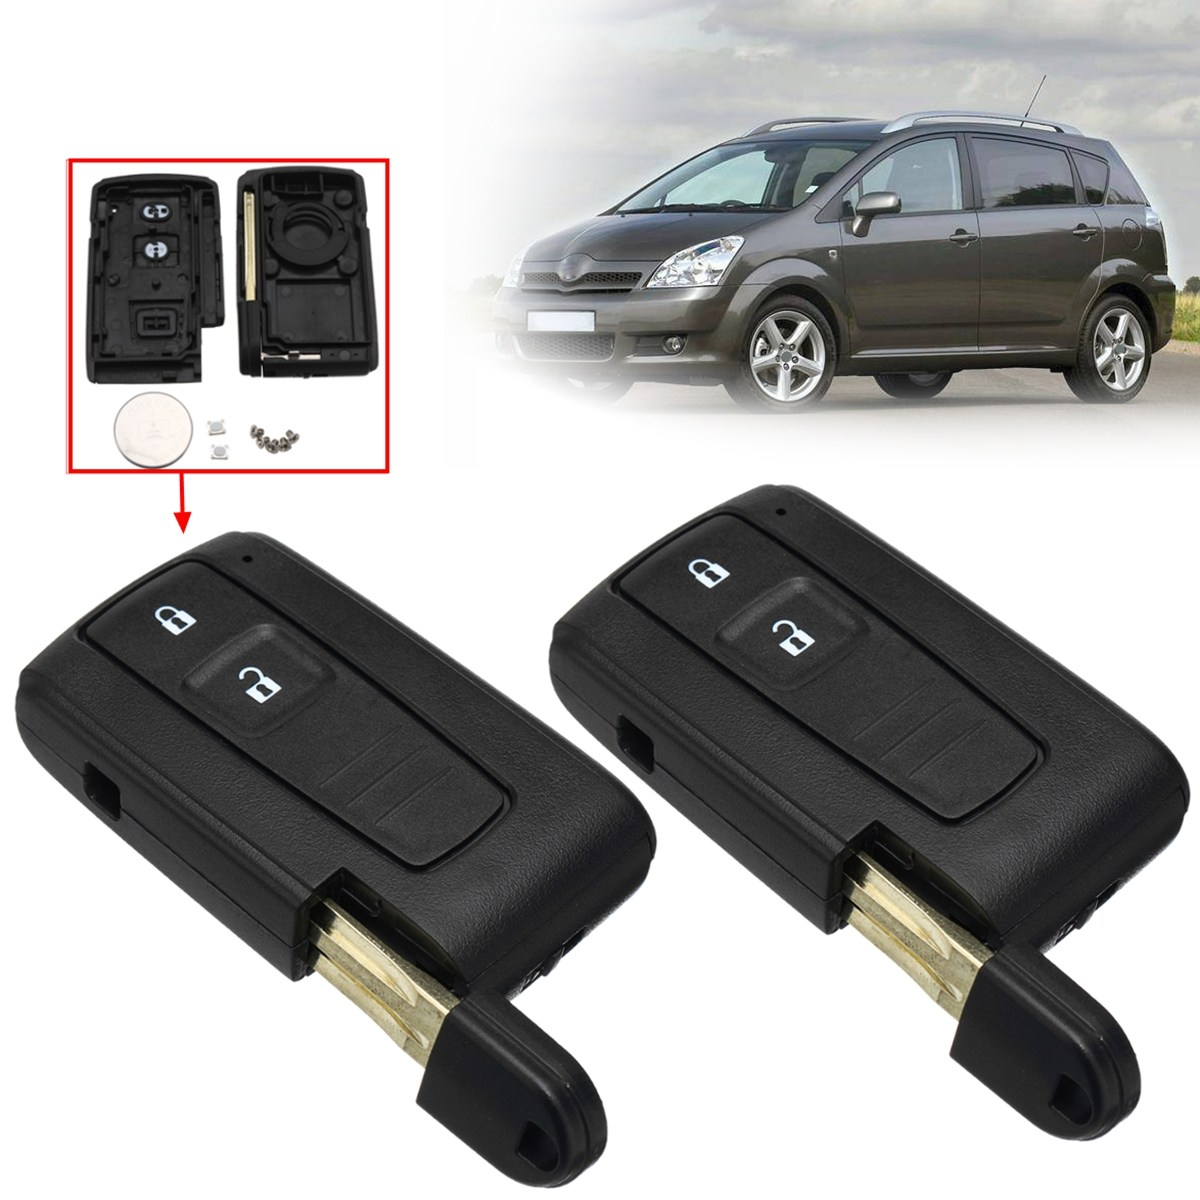 2Pcs 2 Buttons Open Lock Car Remote Key Fob Case Shell With Battery For Toyota Corolla Verso ...